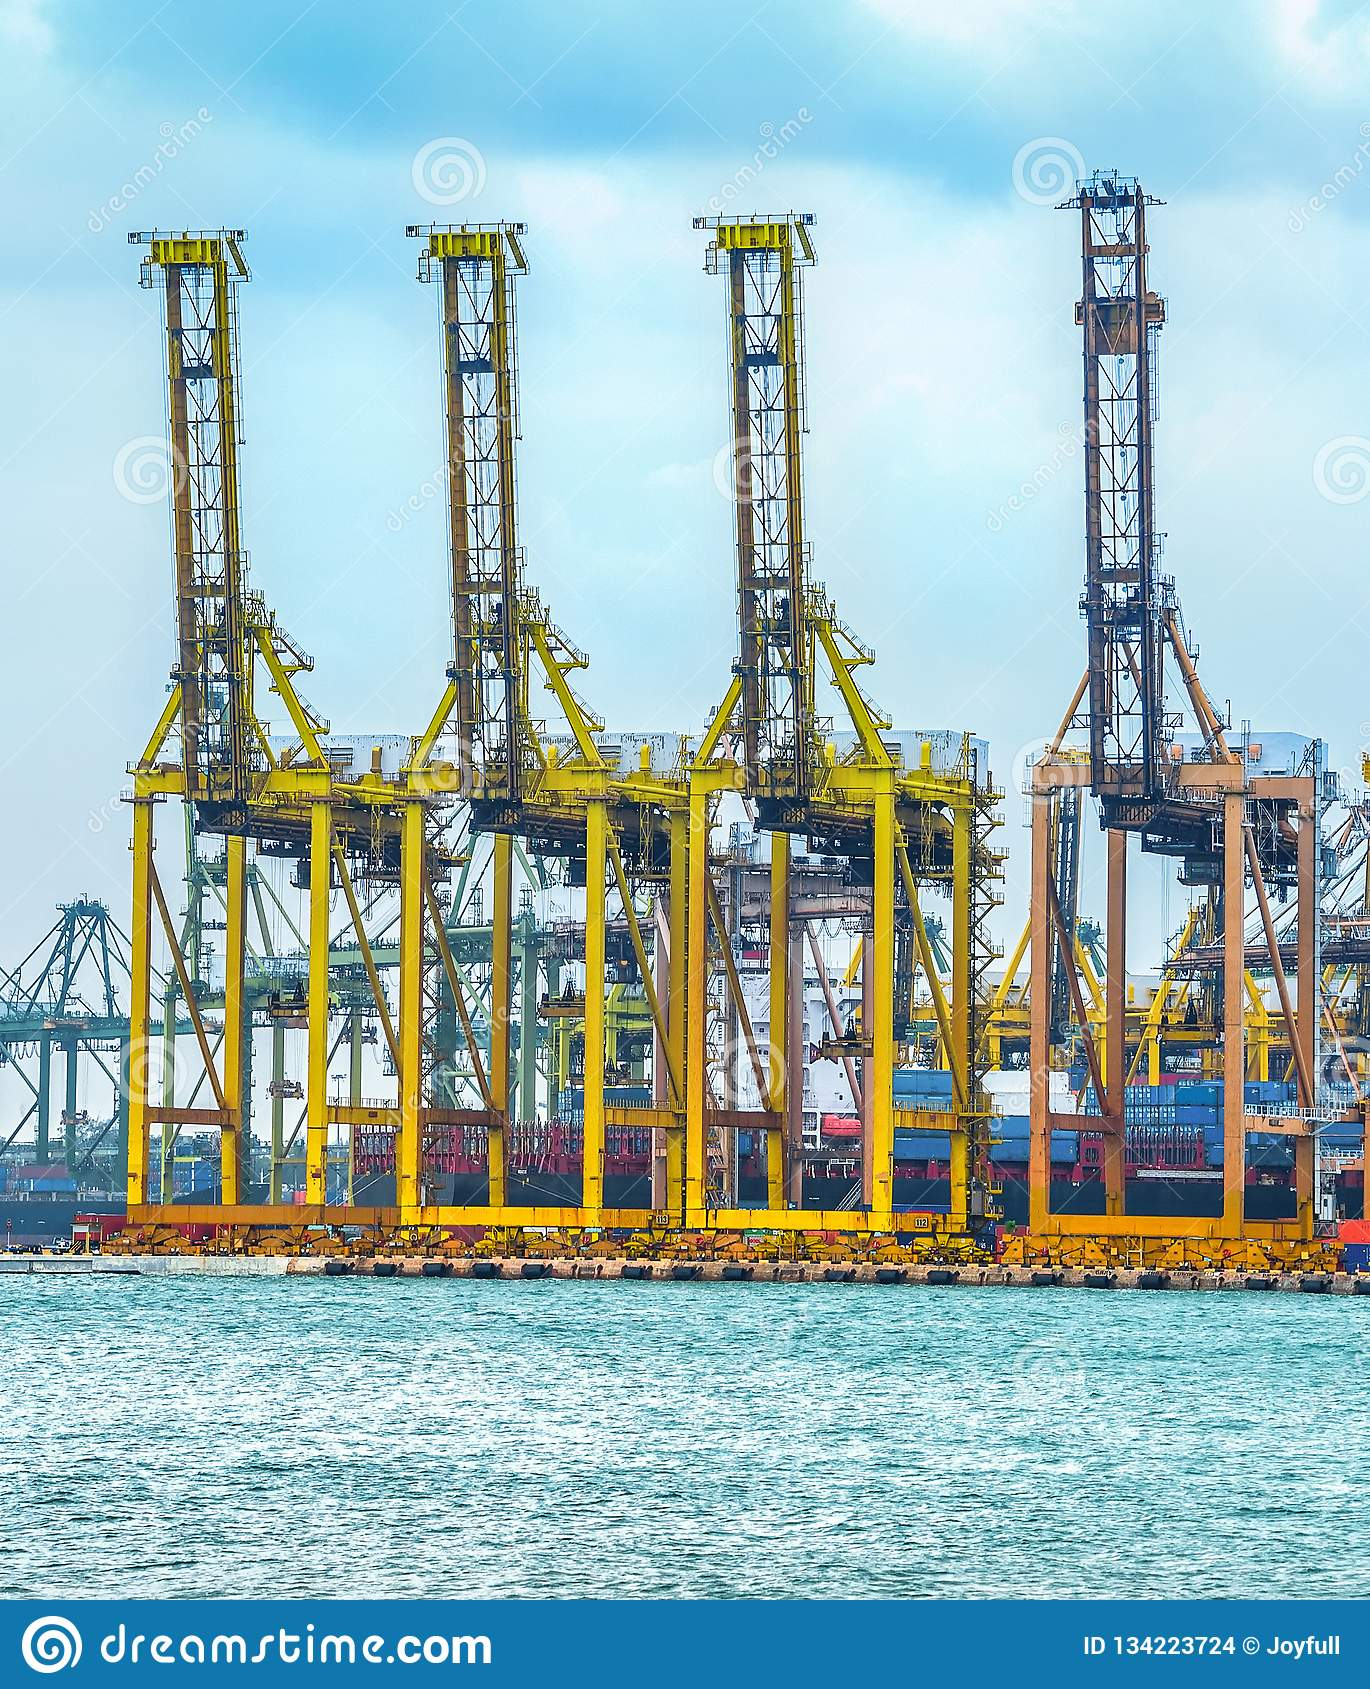 Freight Cranes In Commercial Port Stock Photo - Image of